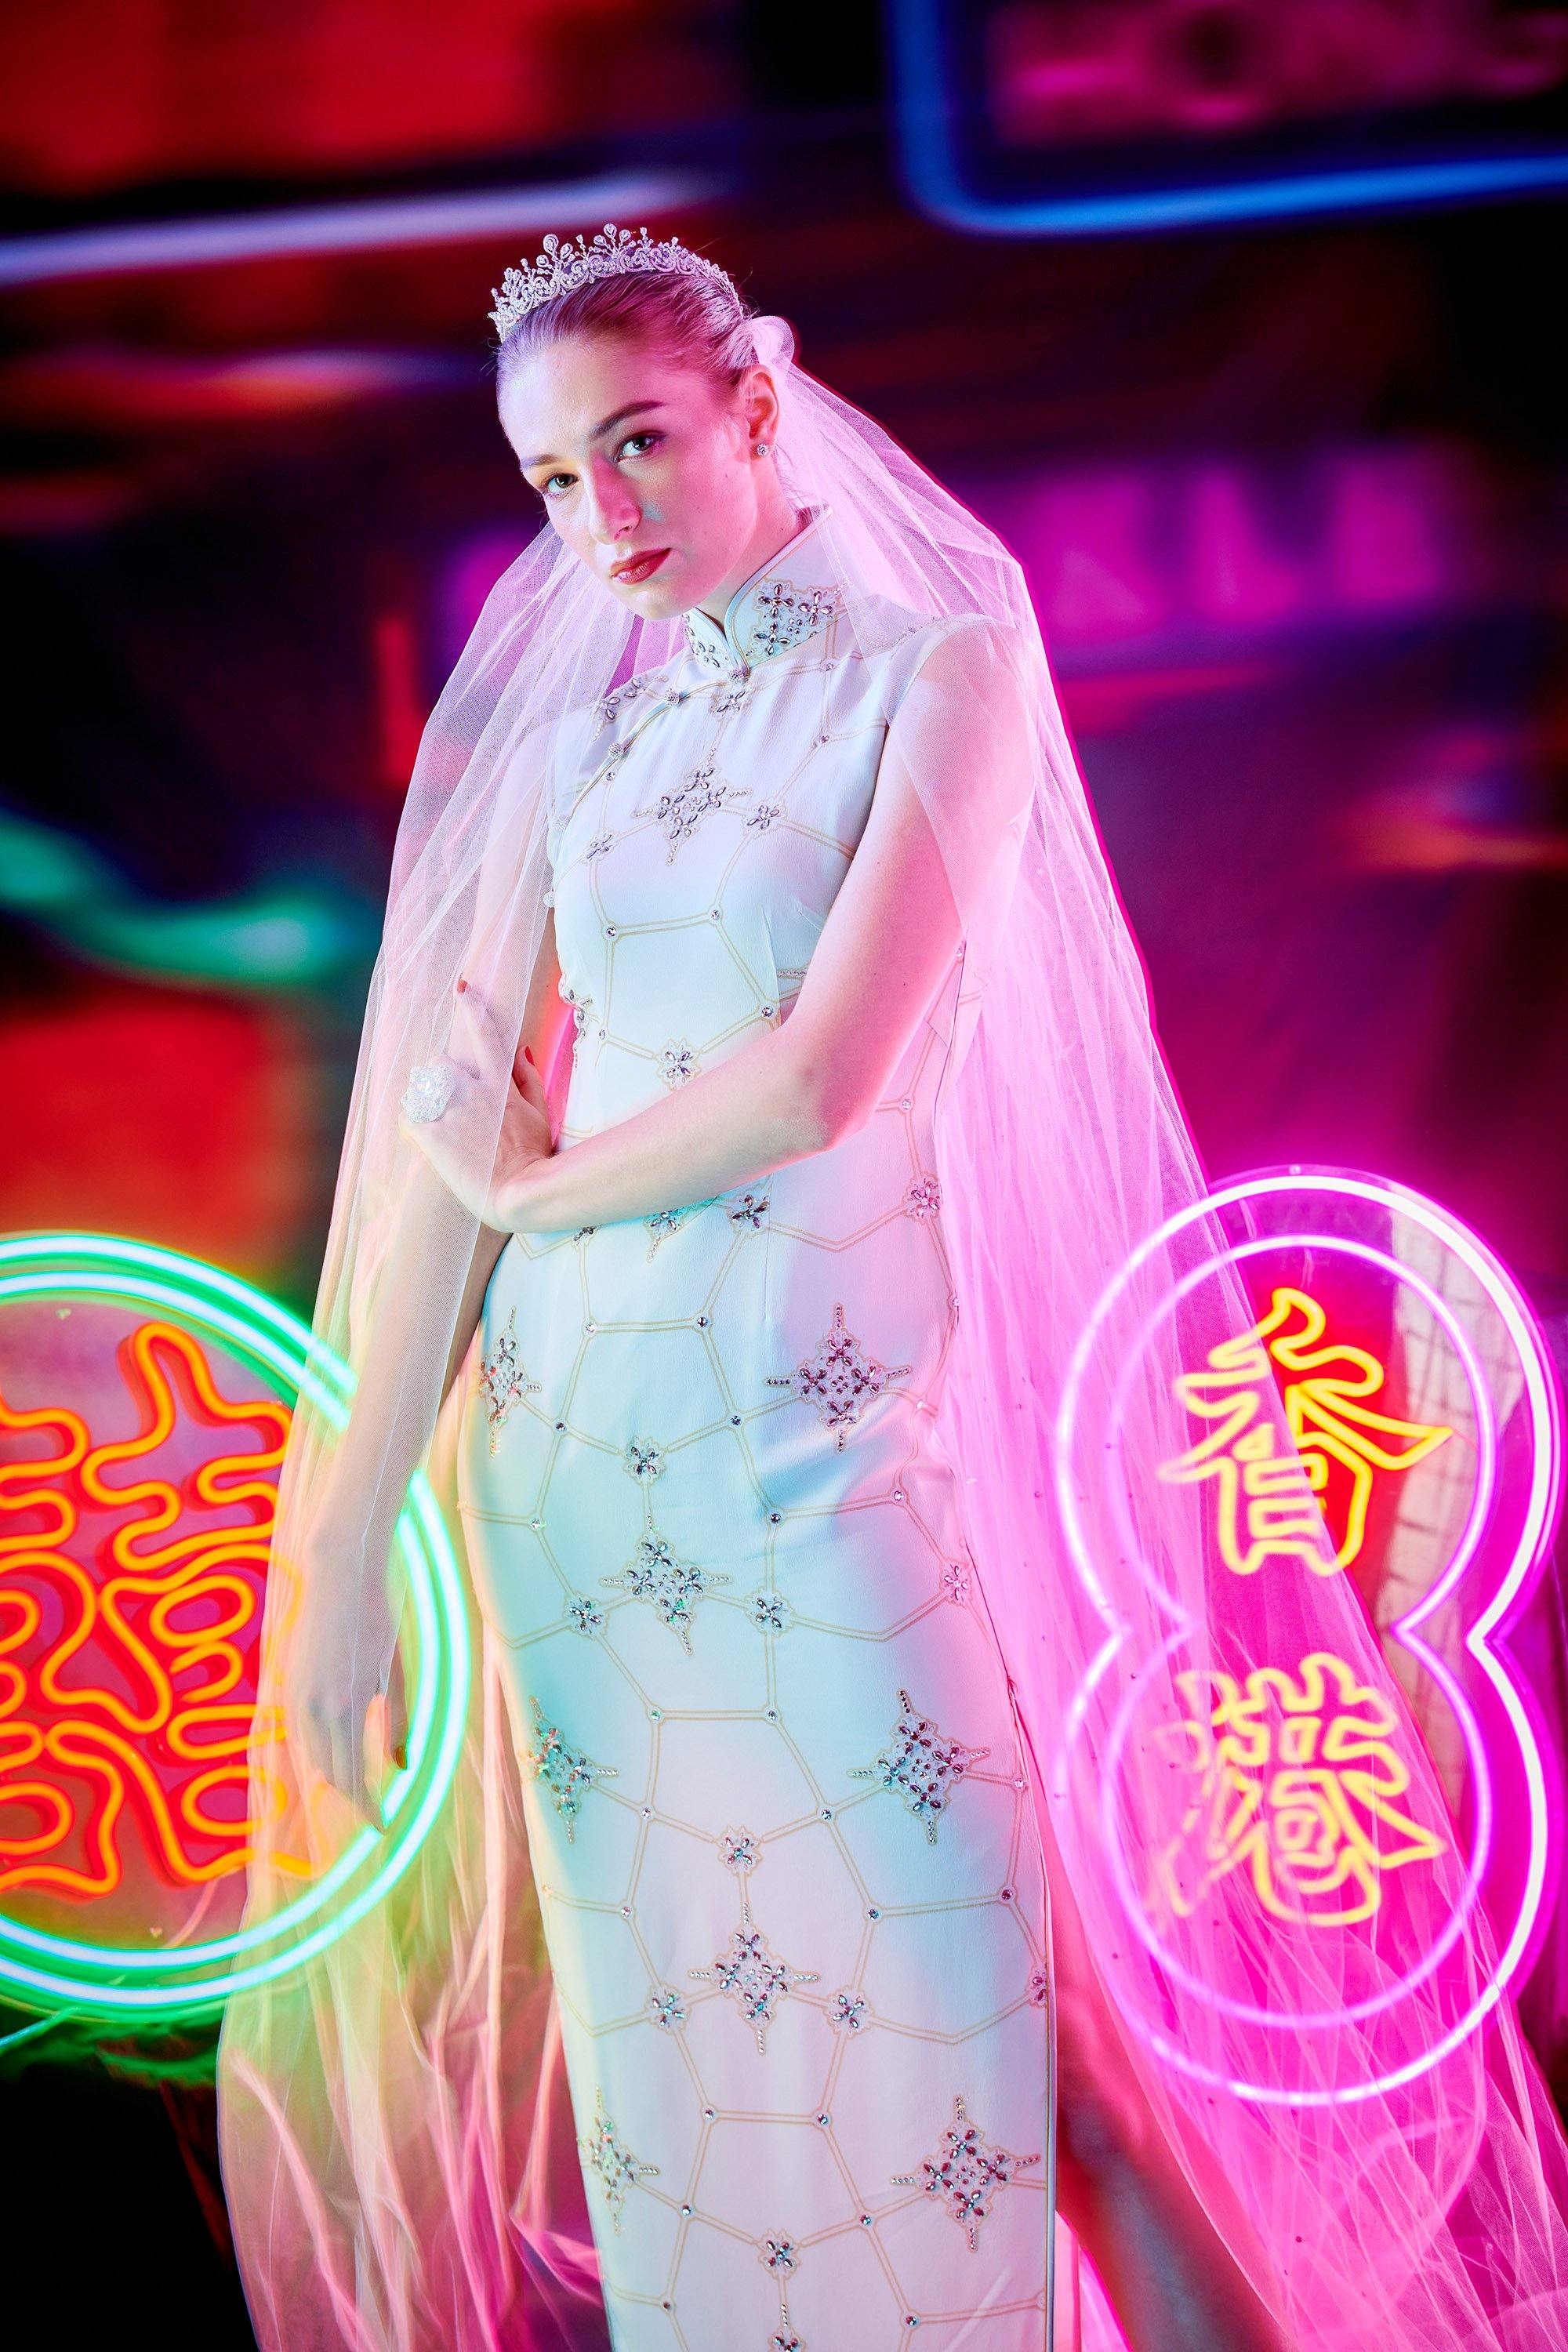 【SNOWFLAKE】Masterpiece Collection Haute Couture 100% Silk Crystal Wedding Cheongsam (Sleeveless/Tailored Fit) - THE SPARKLE COLLECTION by GERMAN POOL